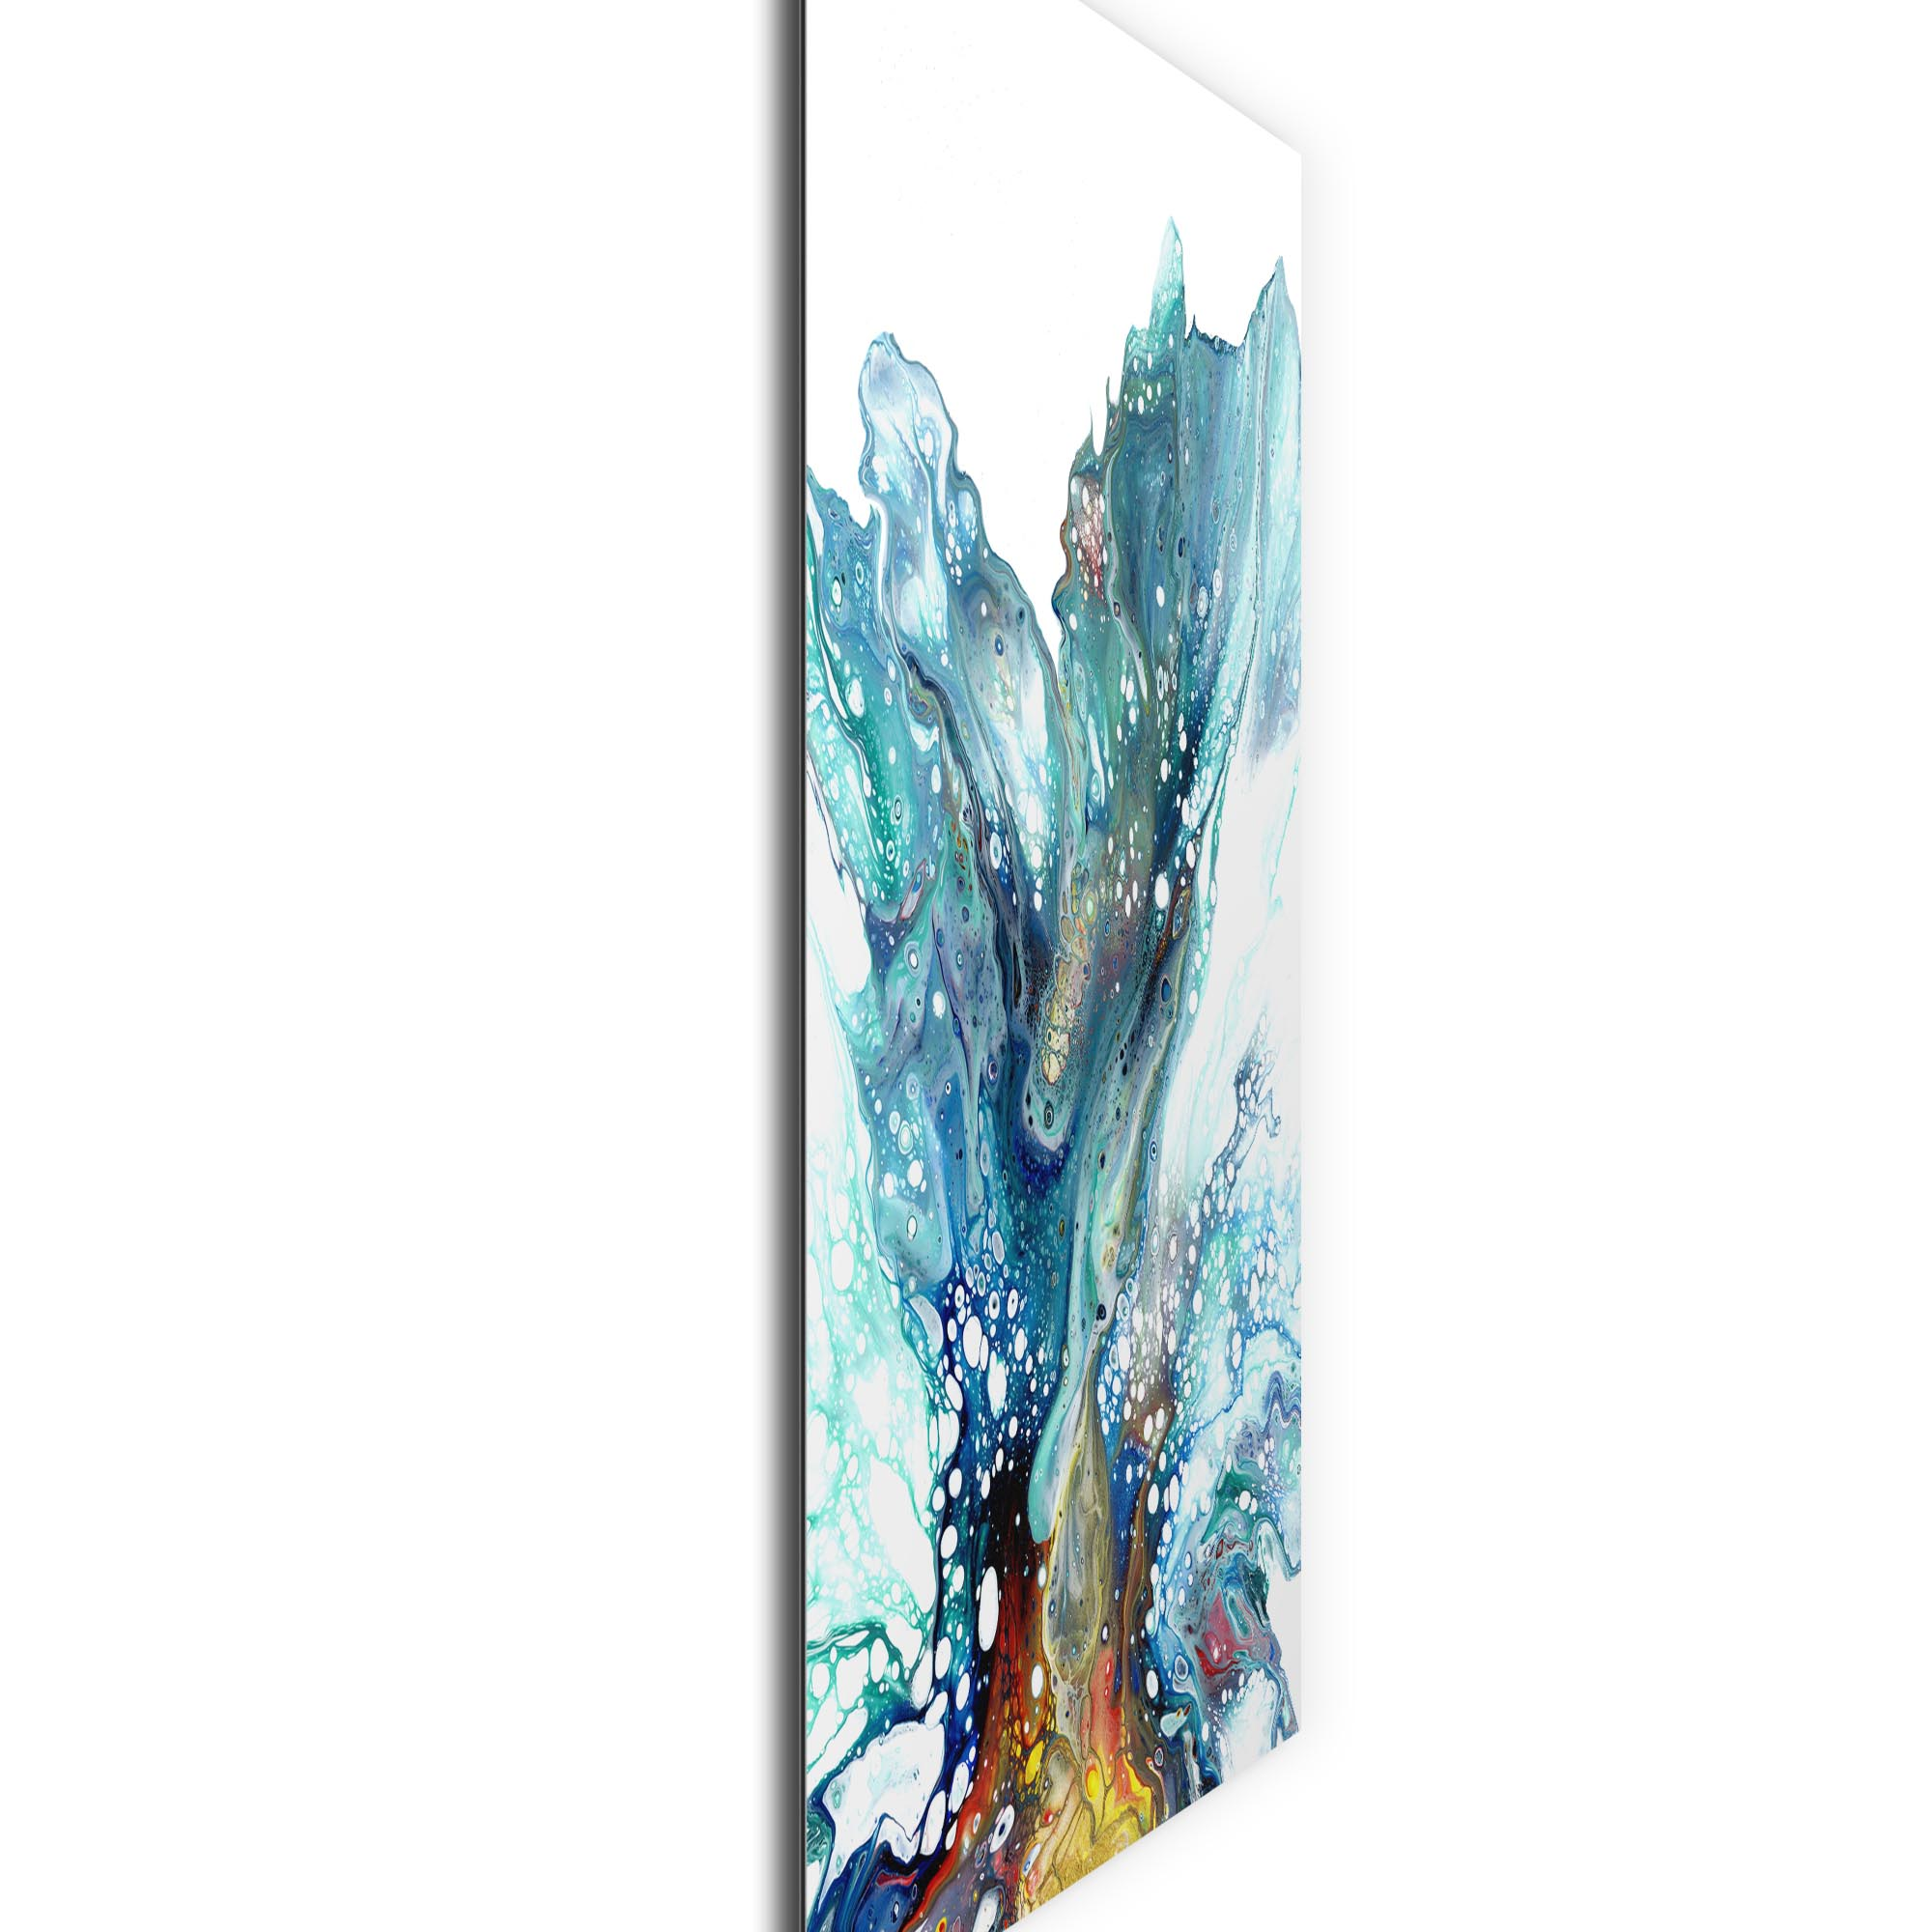 Glacier by Elana Reiter - Abstract Wall Art, Modern Home Decor (24in x 32in) - Image 2